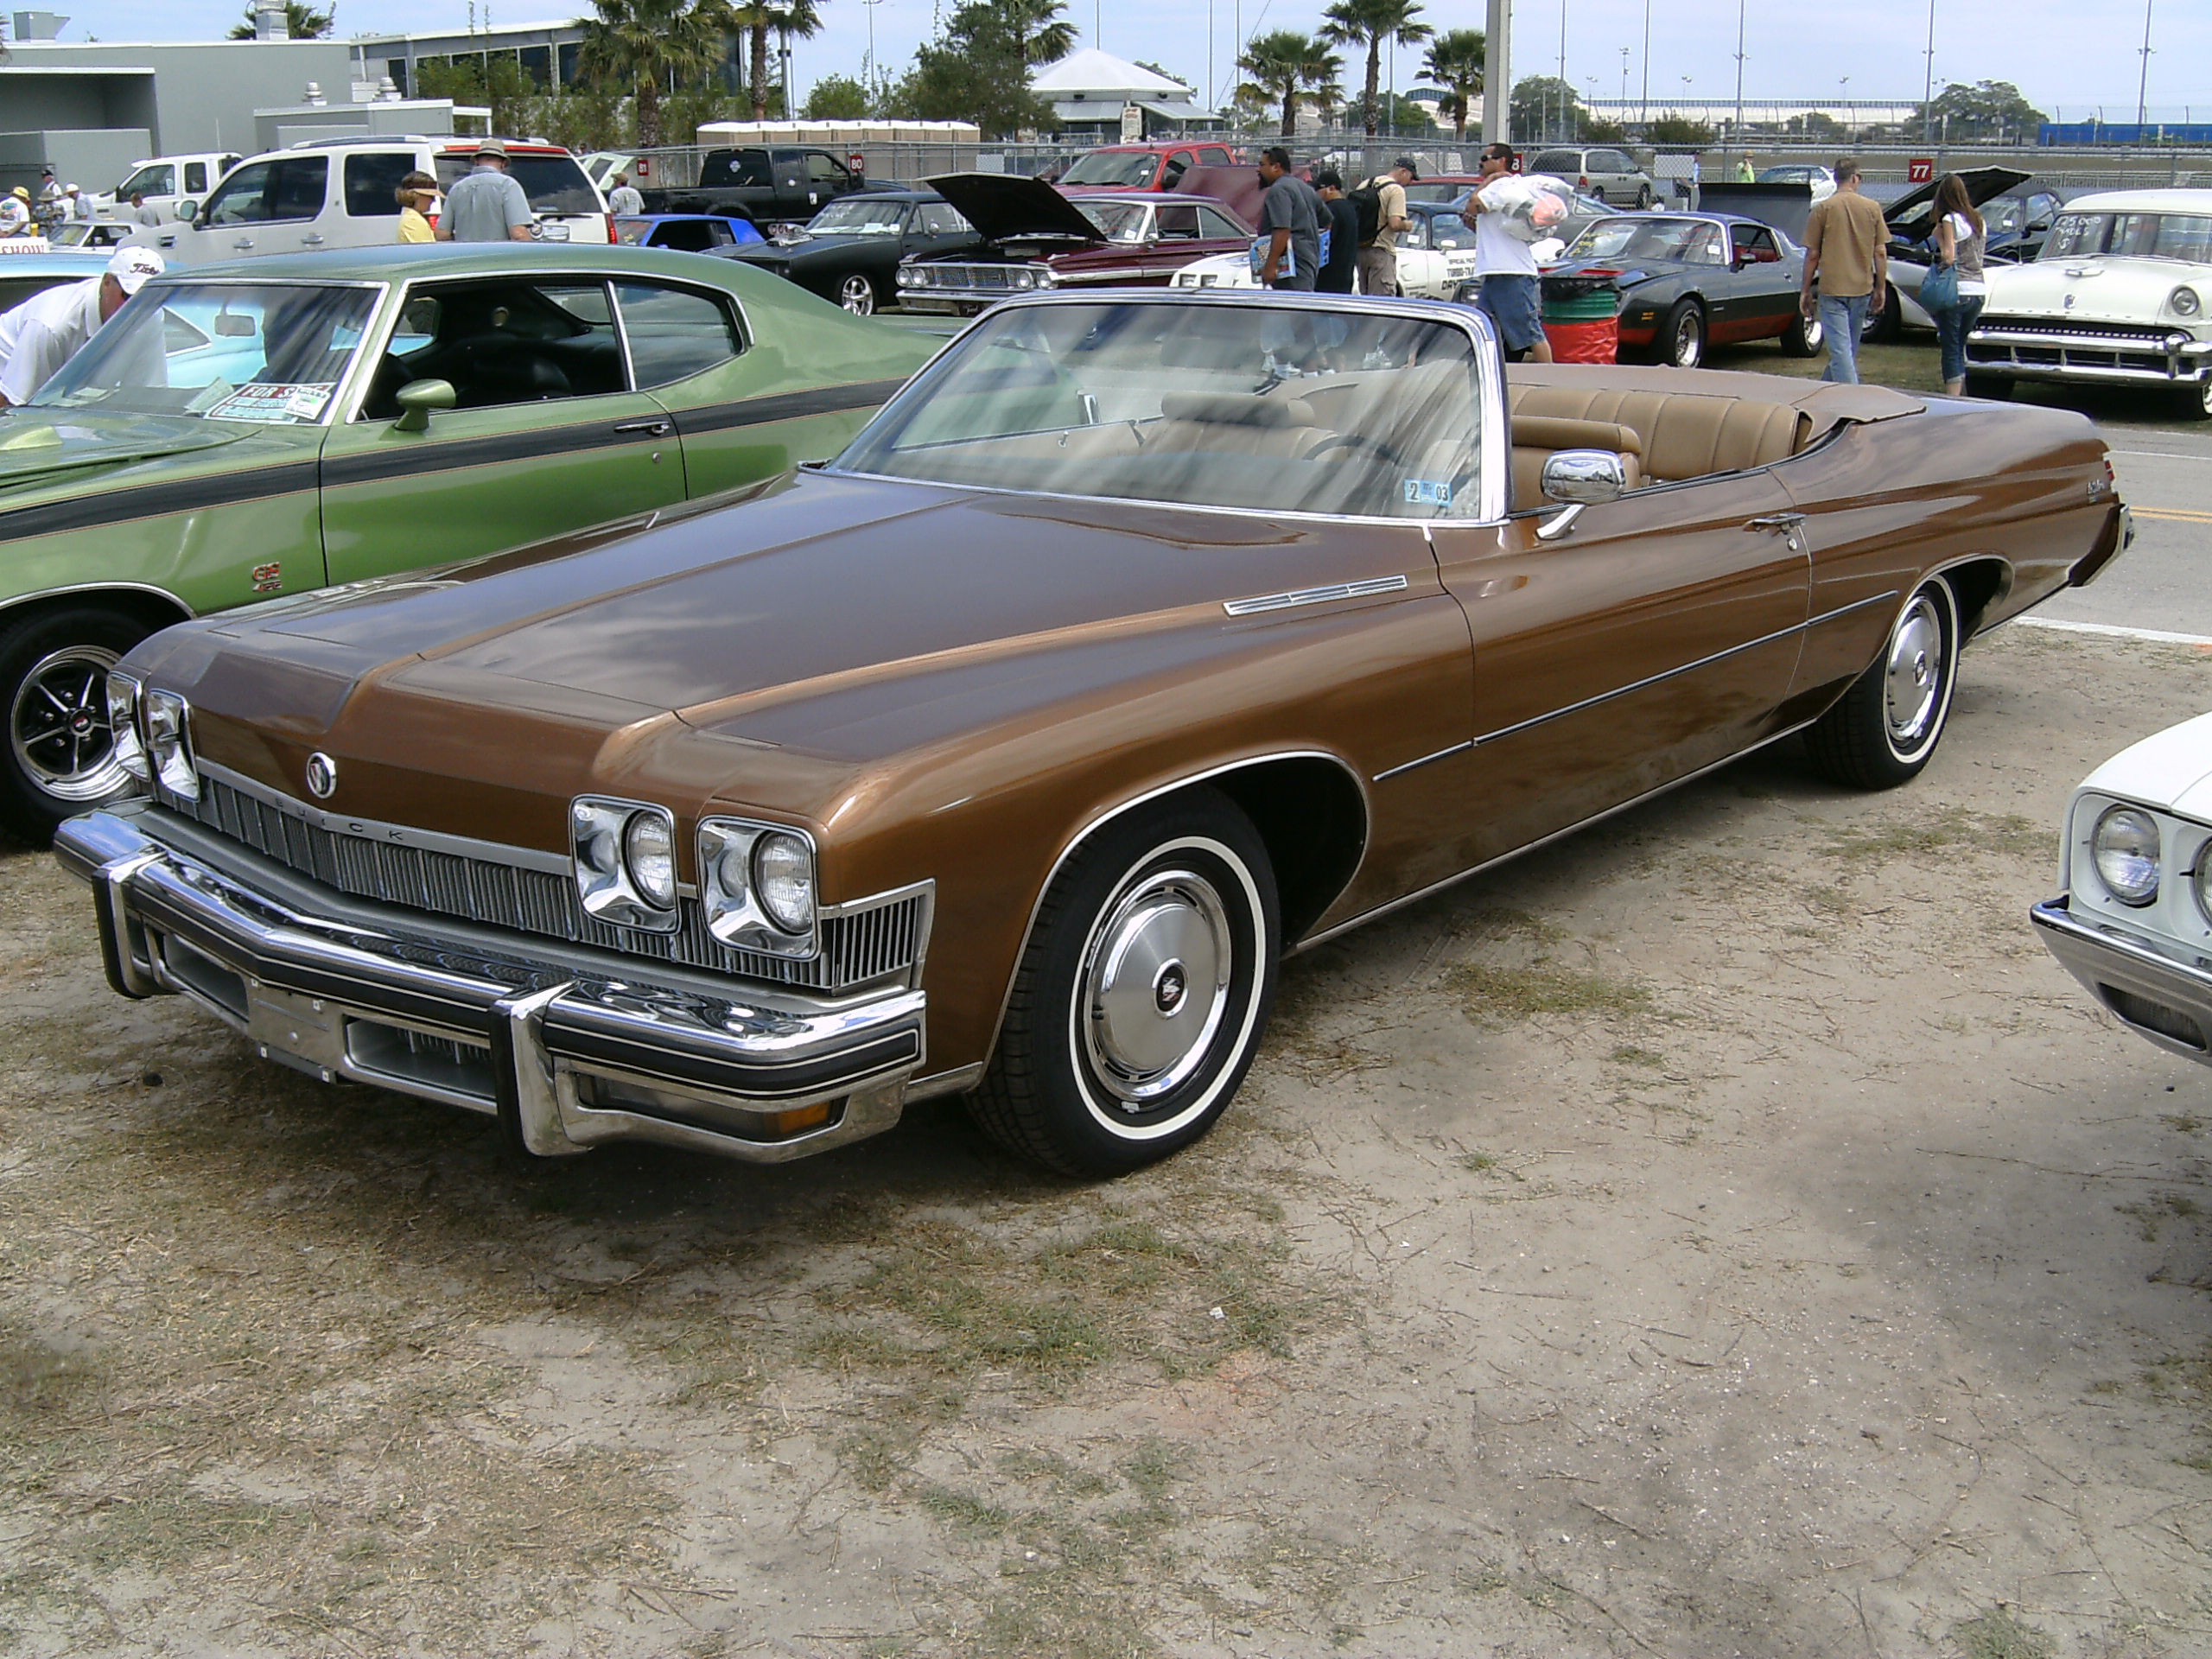 index of /data_images/galleryes/buick-lesabre-luxus/